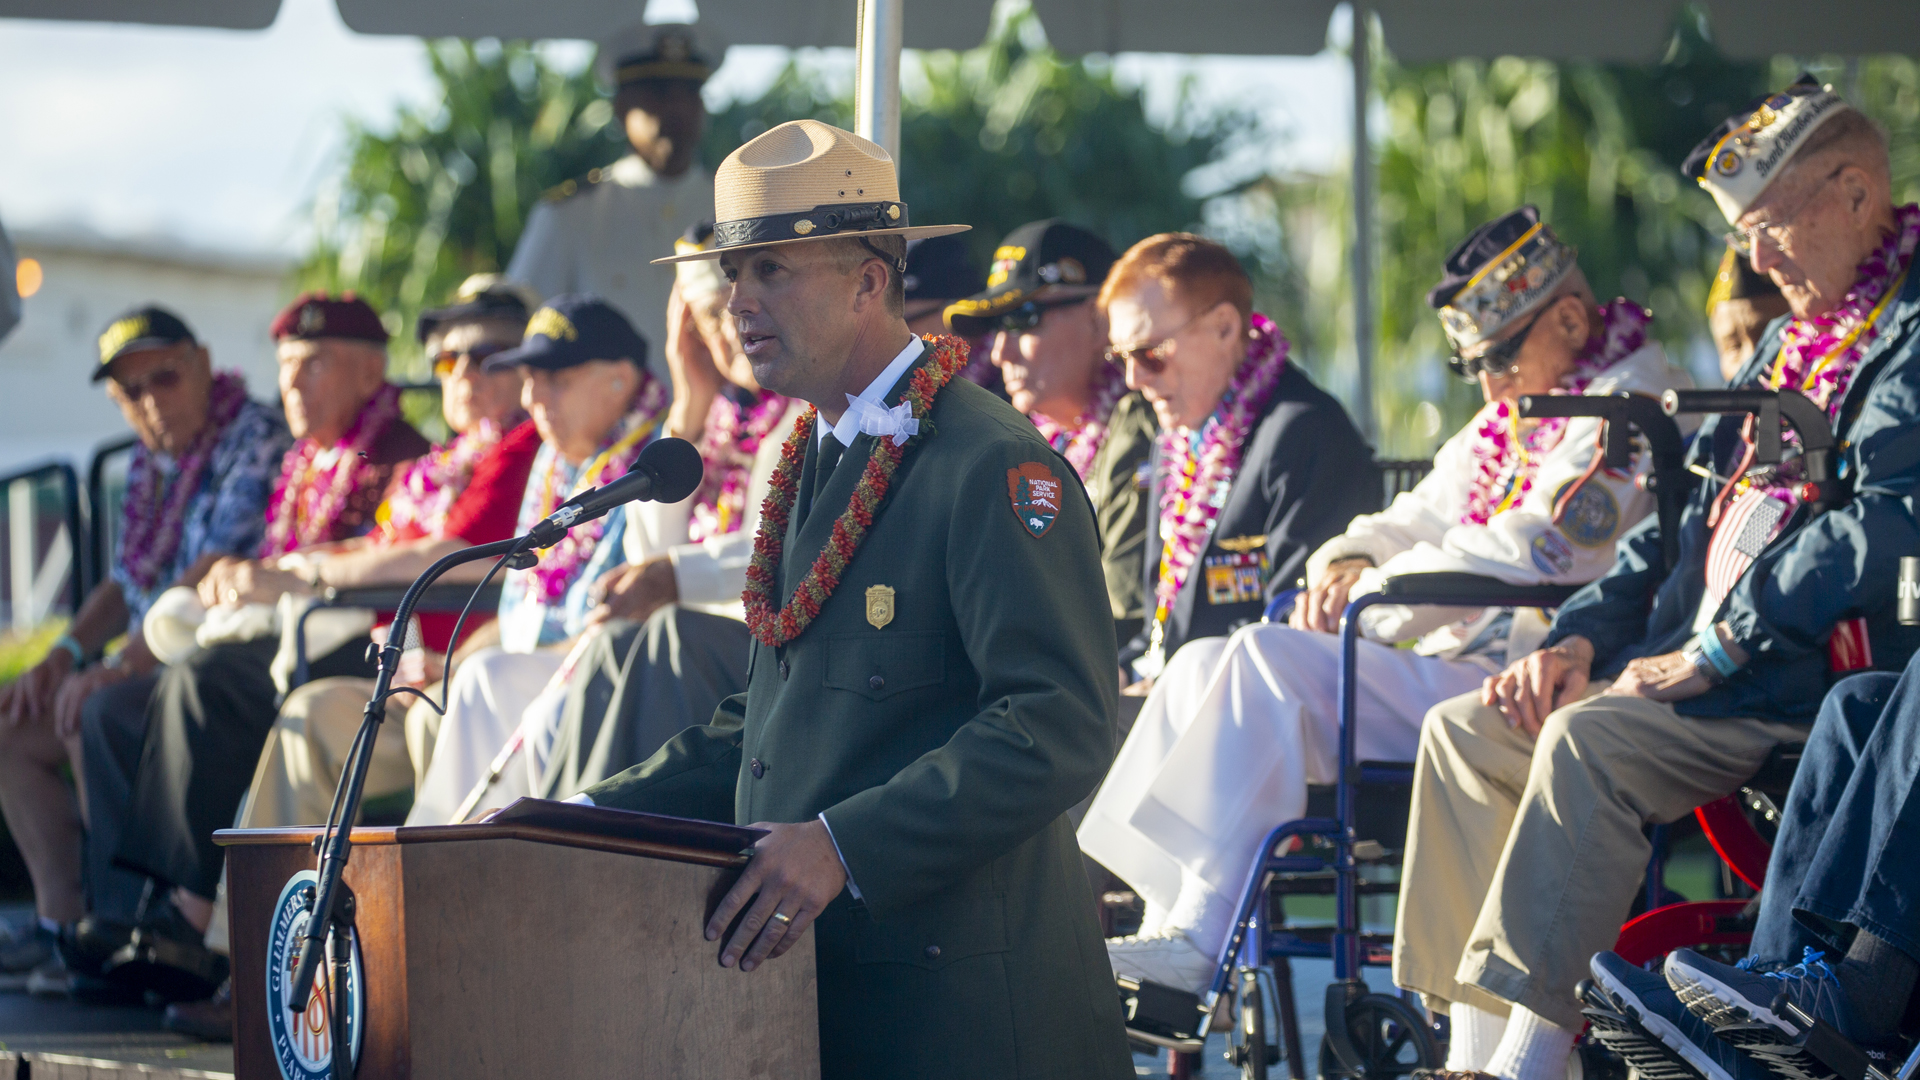 Master of Ceremonies, Chief of Interpretation Jason Blount Pearl Harbor National Memorial gives the Welcome as Pearl Harbor Commemorates the 78th Anniversary Of World War II Attacks as Pearl Harbor Commemorates the 78th Anniversary Of World War II Attacks at the Pearl Harbor National Memorial on December 7, 2019 in Honolulu, Hawaii. (Credit: Kat Wade/Getty Images)